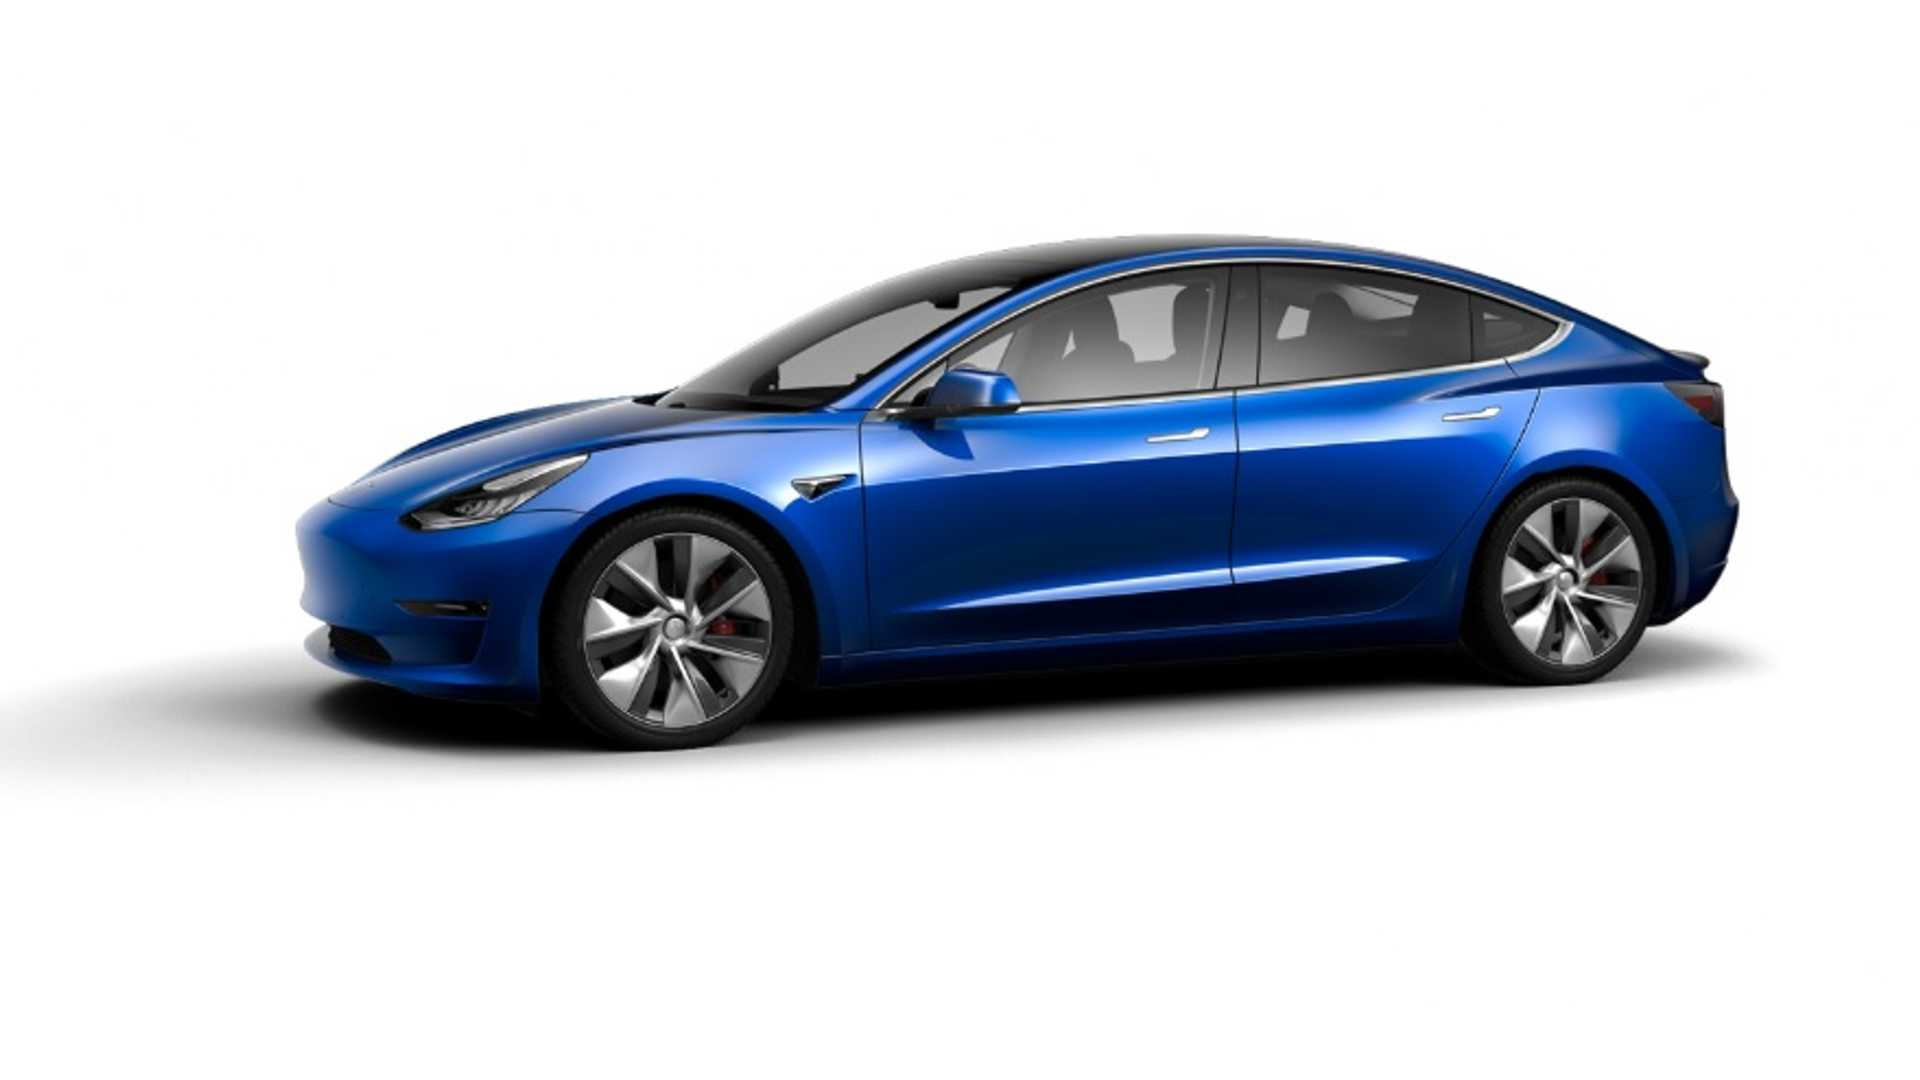 China Made Tesla Model 3 Price Announcement Expected On Friday